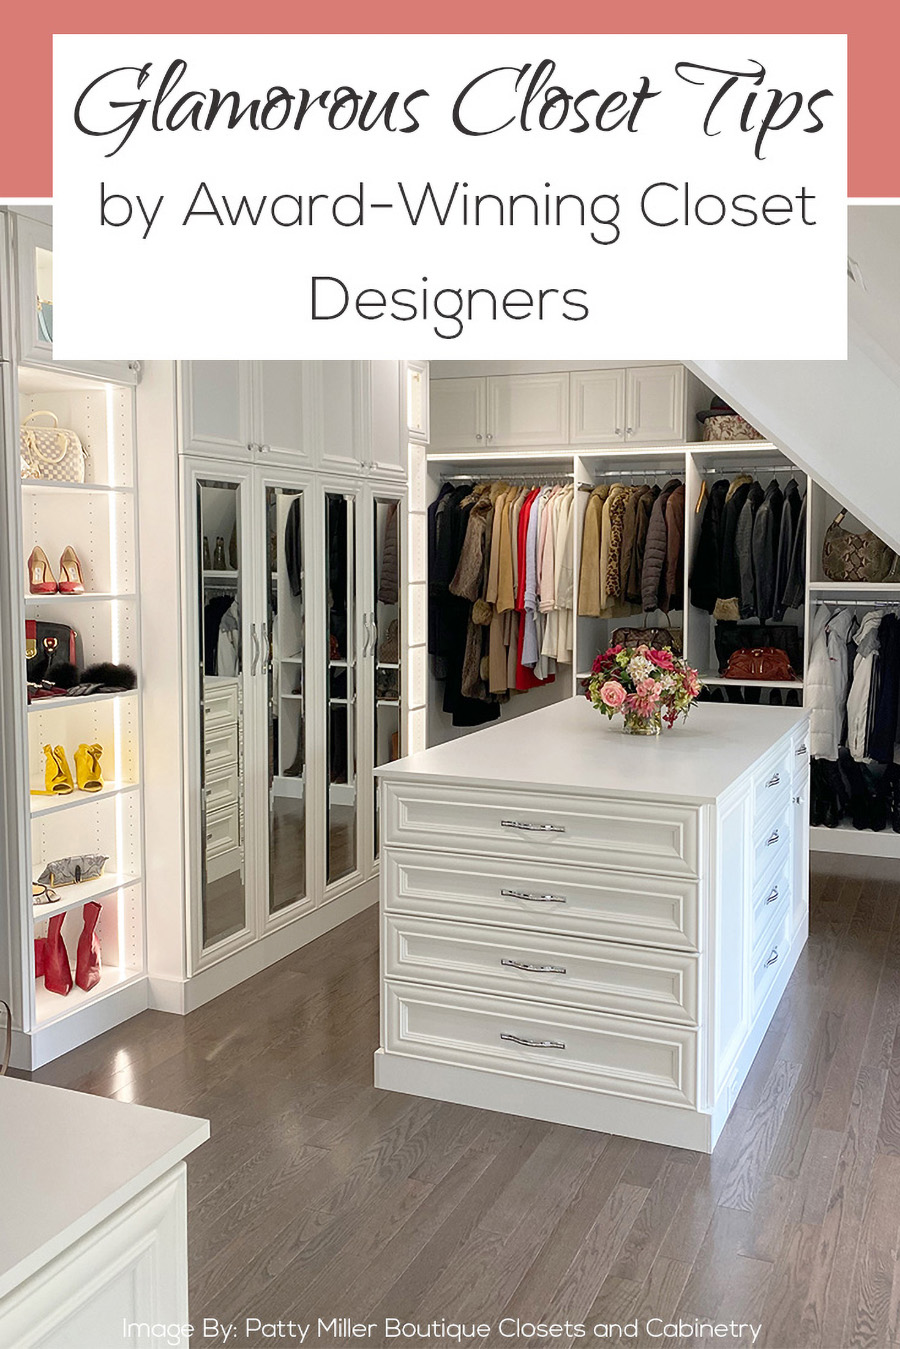 8 don't let pinterest delude you credit Patty Miller Boutique Closets and Cabinetry | Innovate Home Org | #CustomStorage #HomeOrganization #ClosetSystem